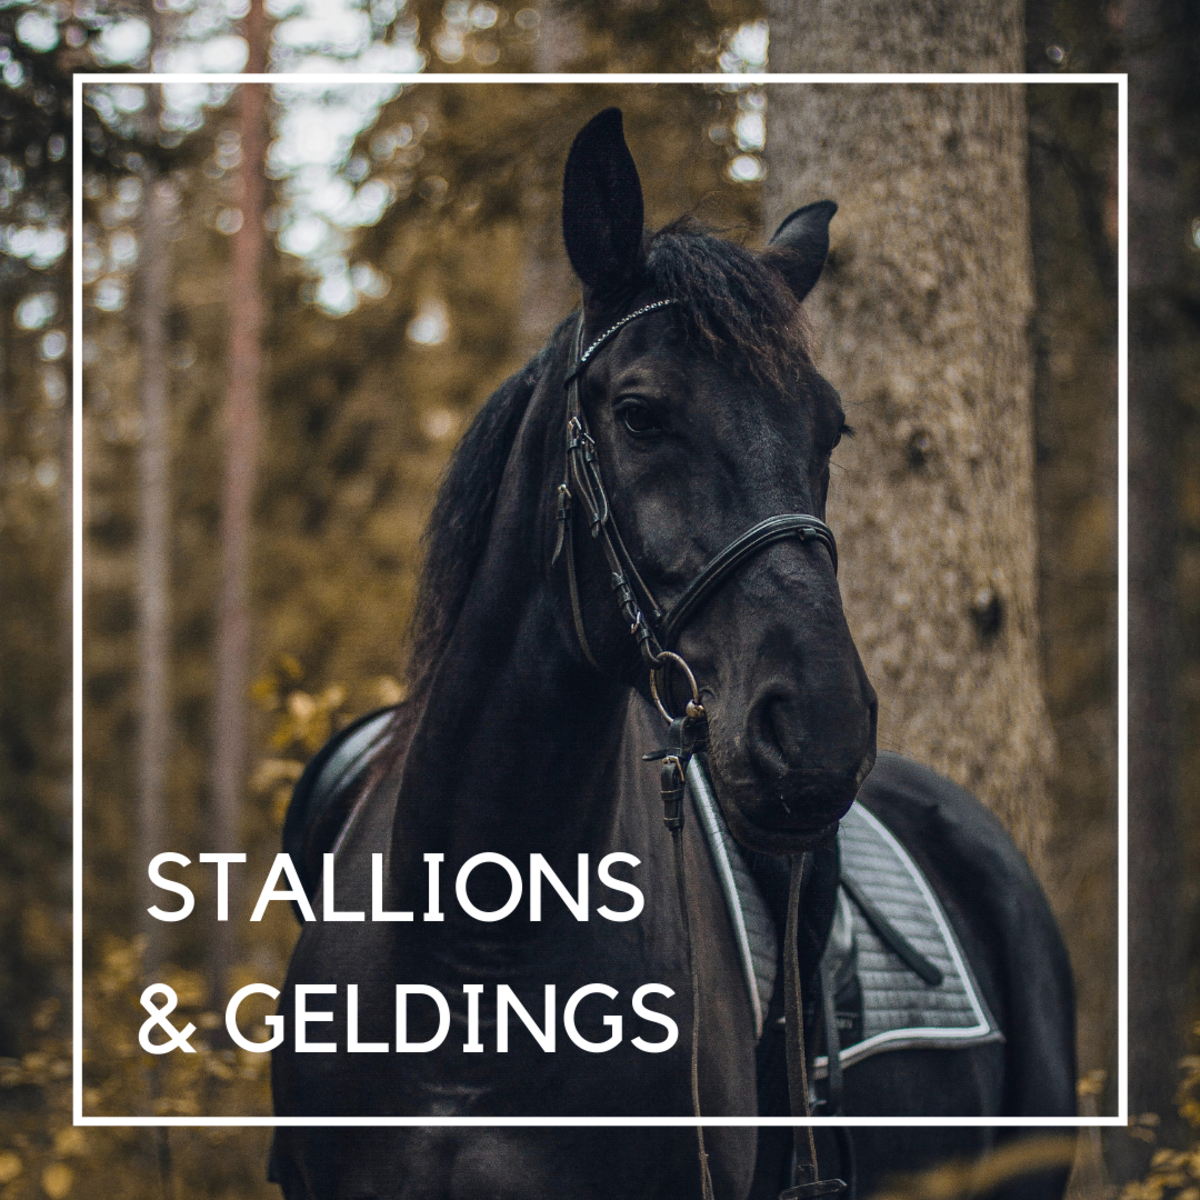 Horse names for stallions and geldings.